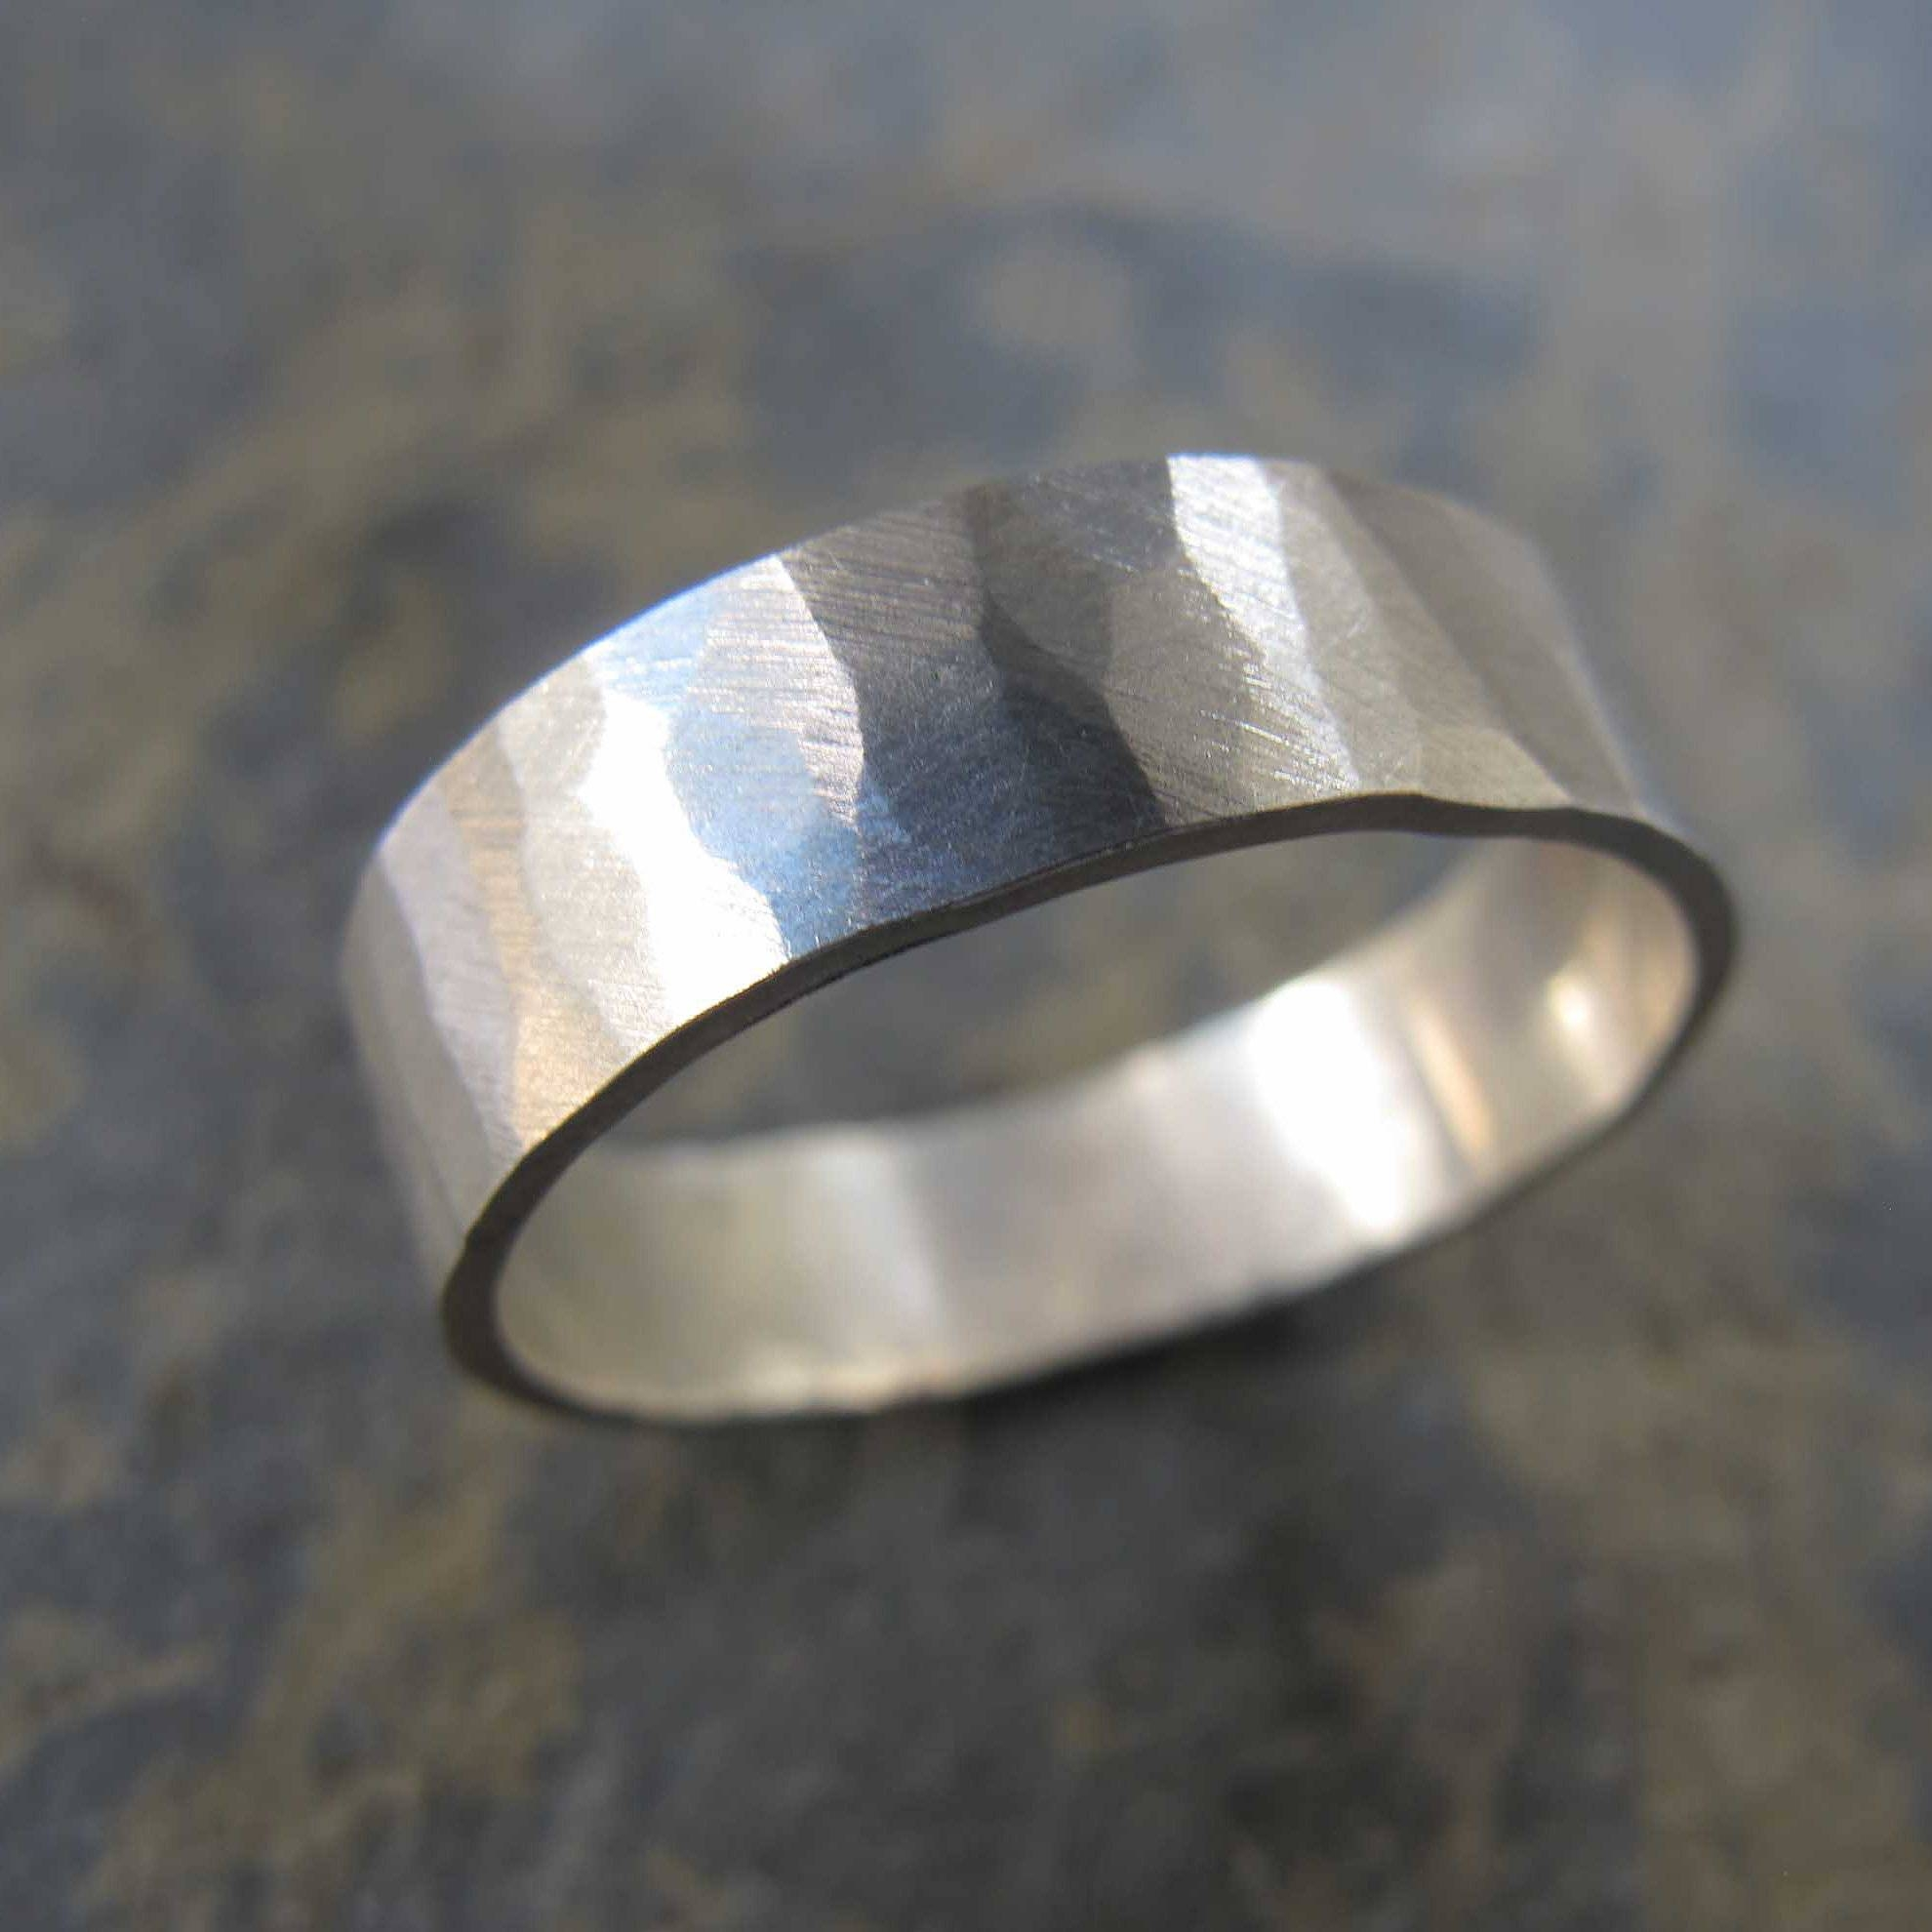 Heather Stephens Jewellery|Handmade Silver & Gold Wedding Rings Regarding Mens Hammered Wedding Bands (Gallery 13 of 15)